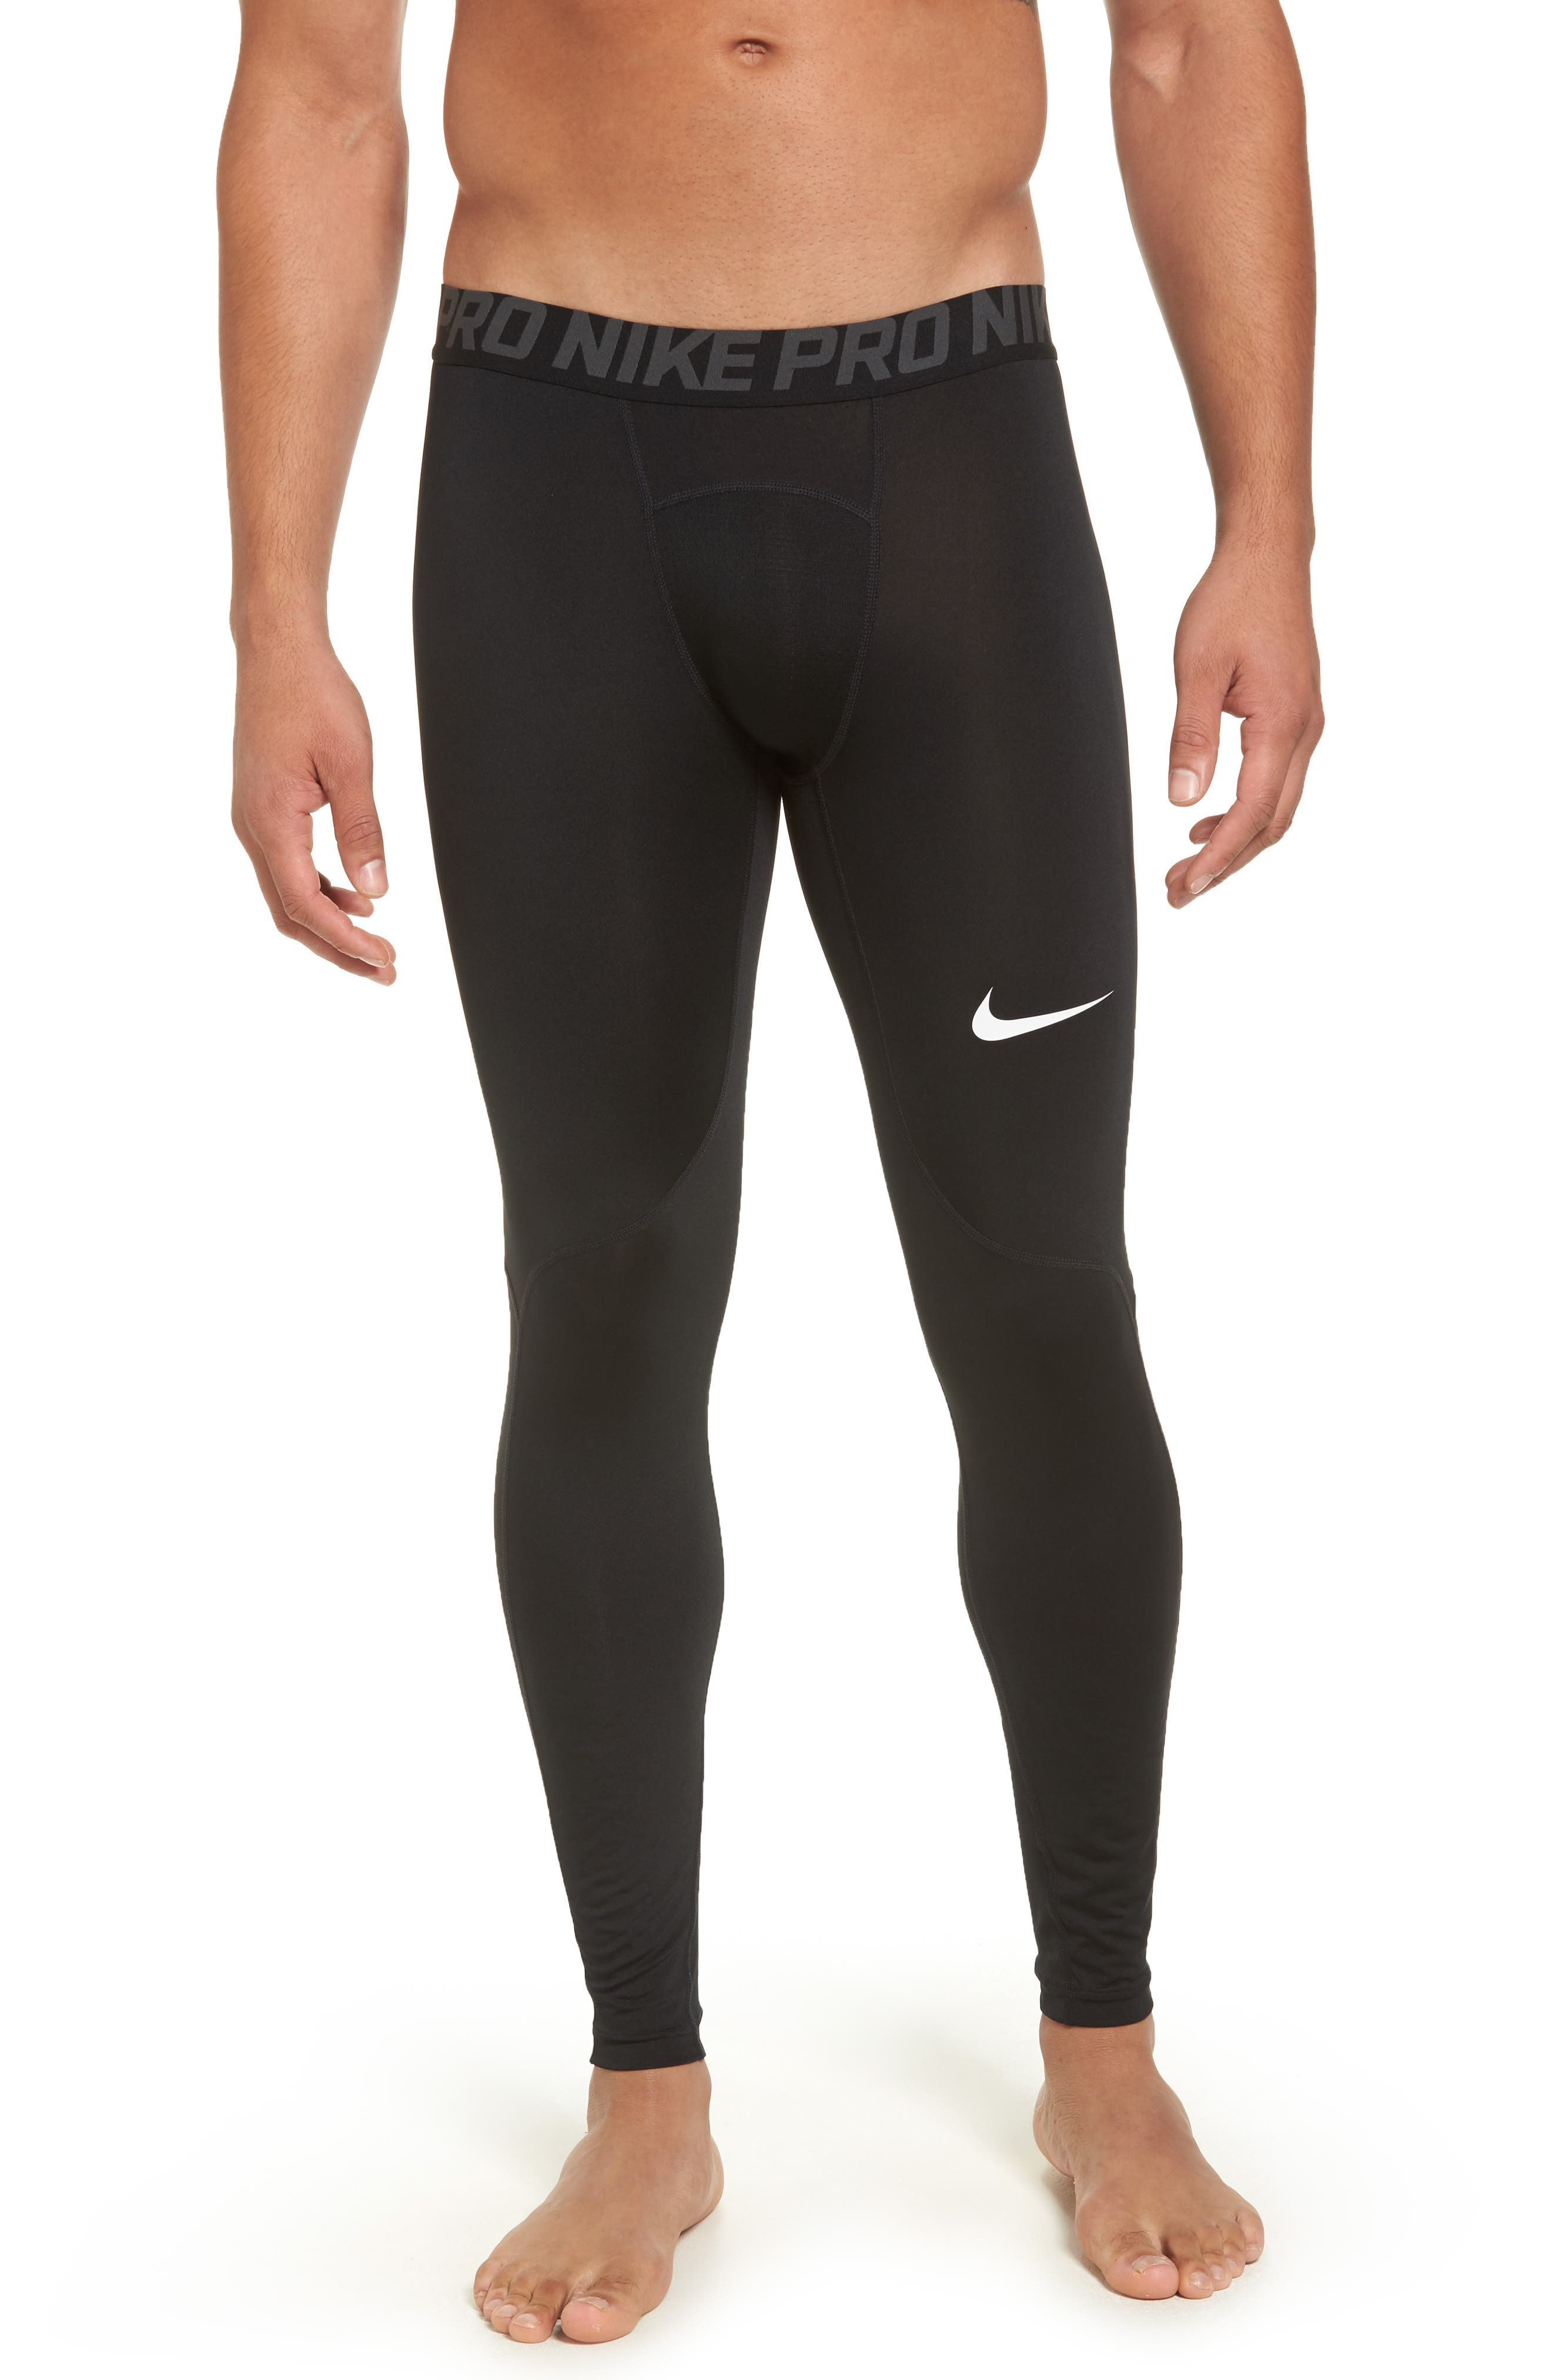 Main Image - Nike Pro Three Quarter Training Tights